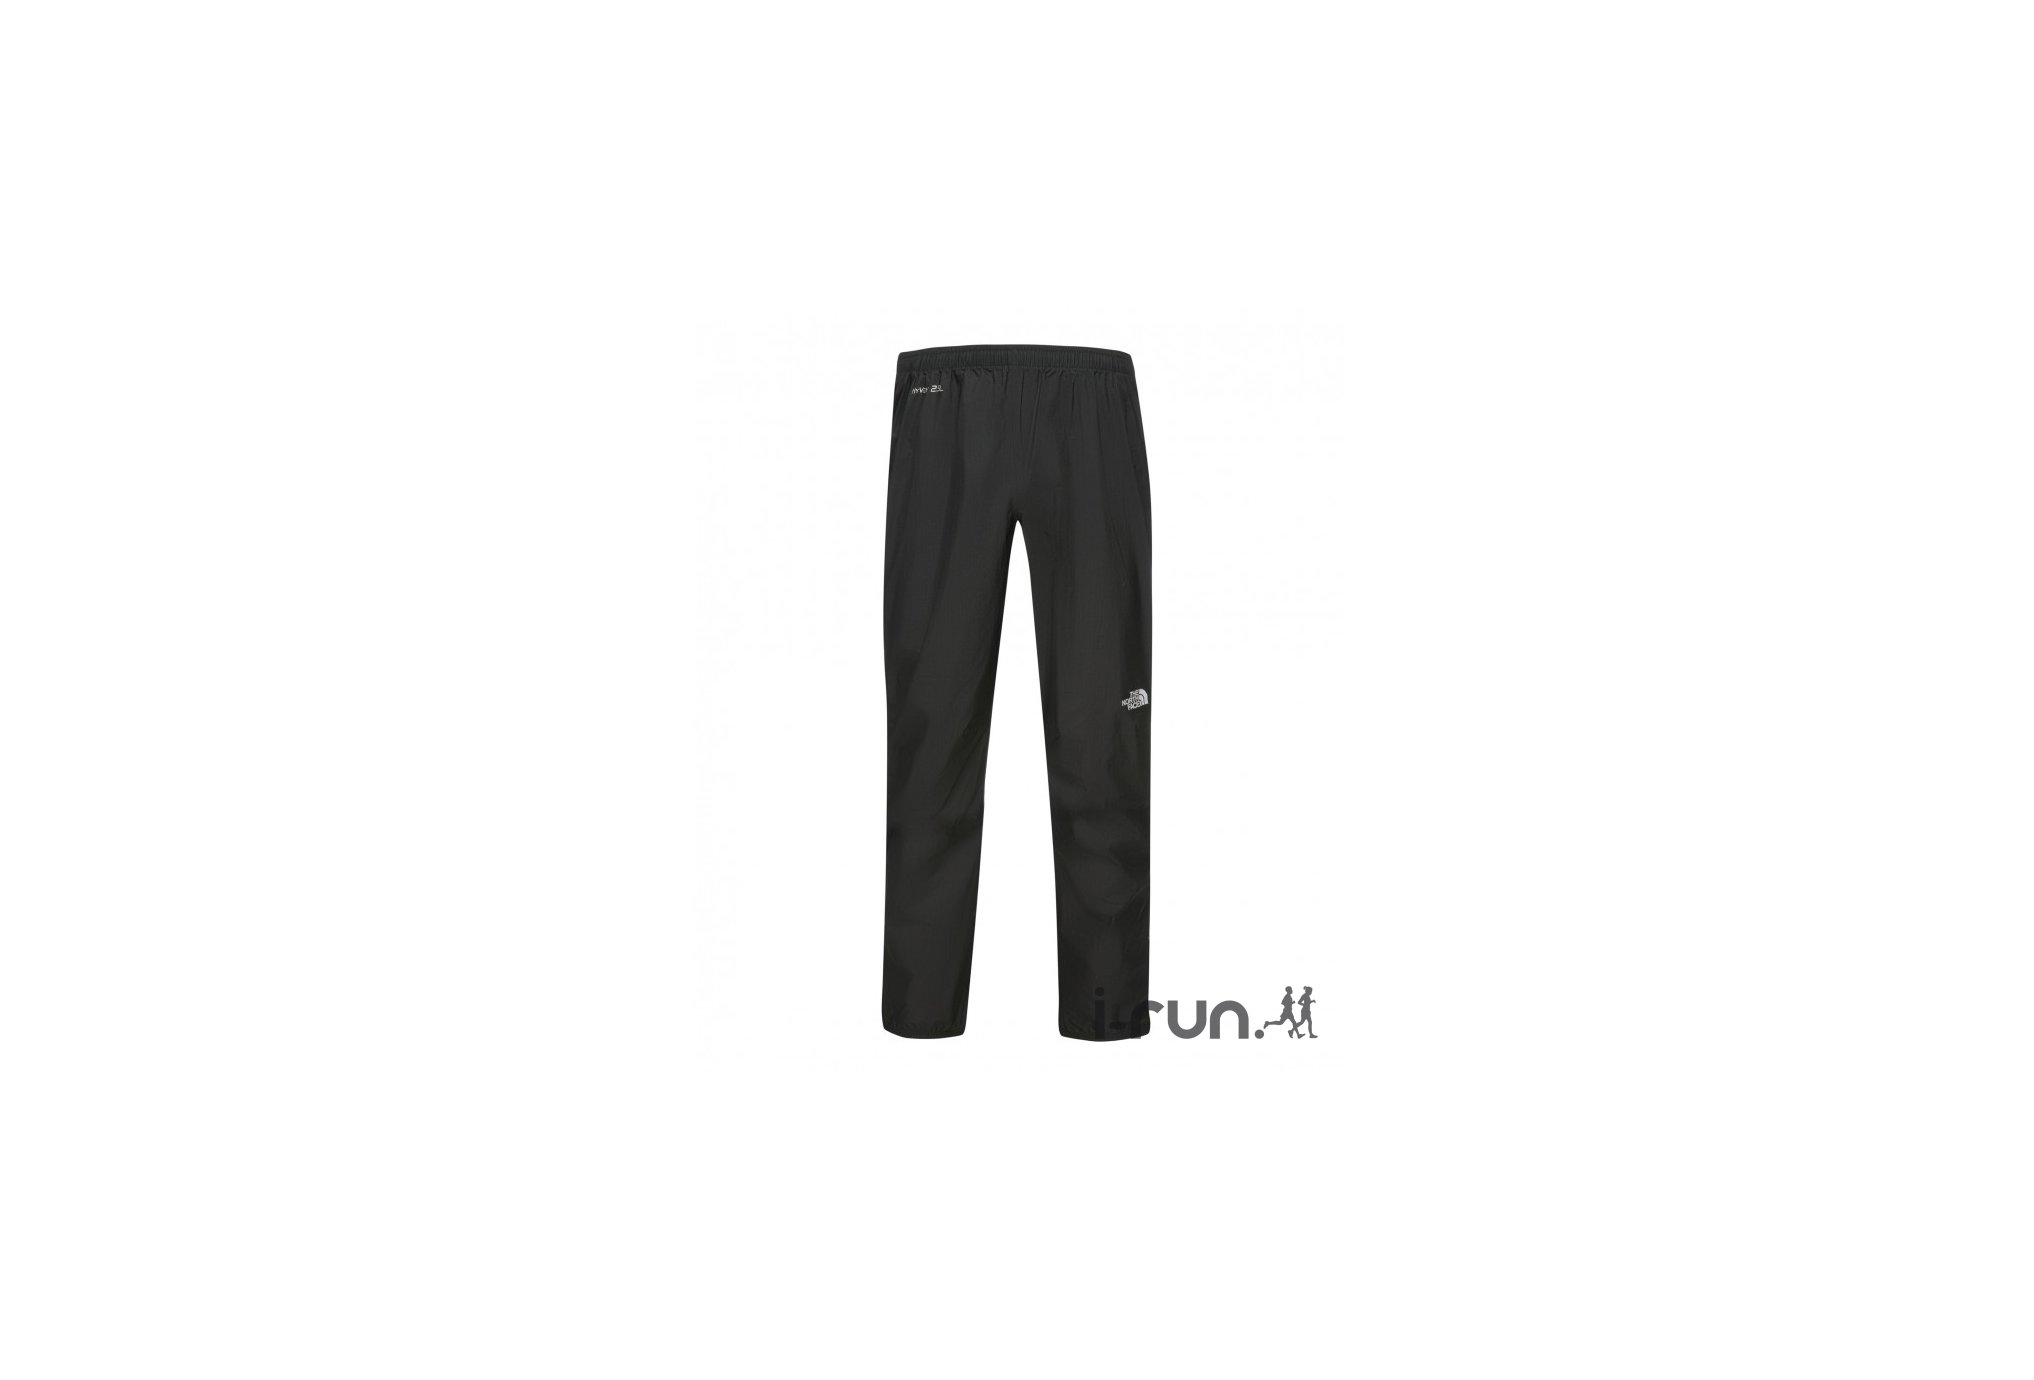 The North Face Pantalon AK Feather Lite Storm Blocker W Diététique Vêtements femme